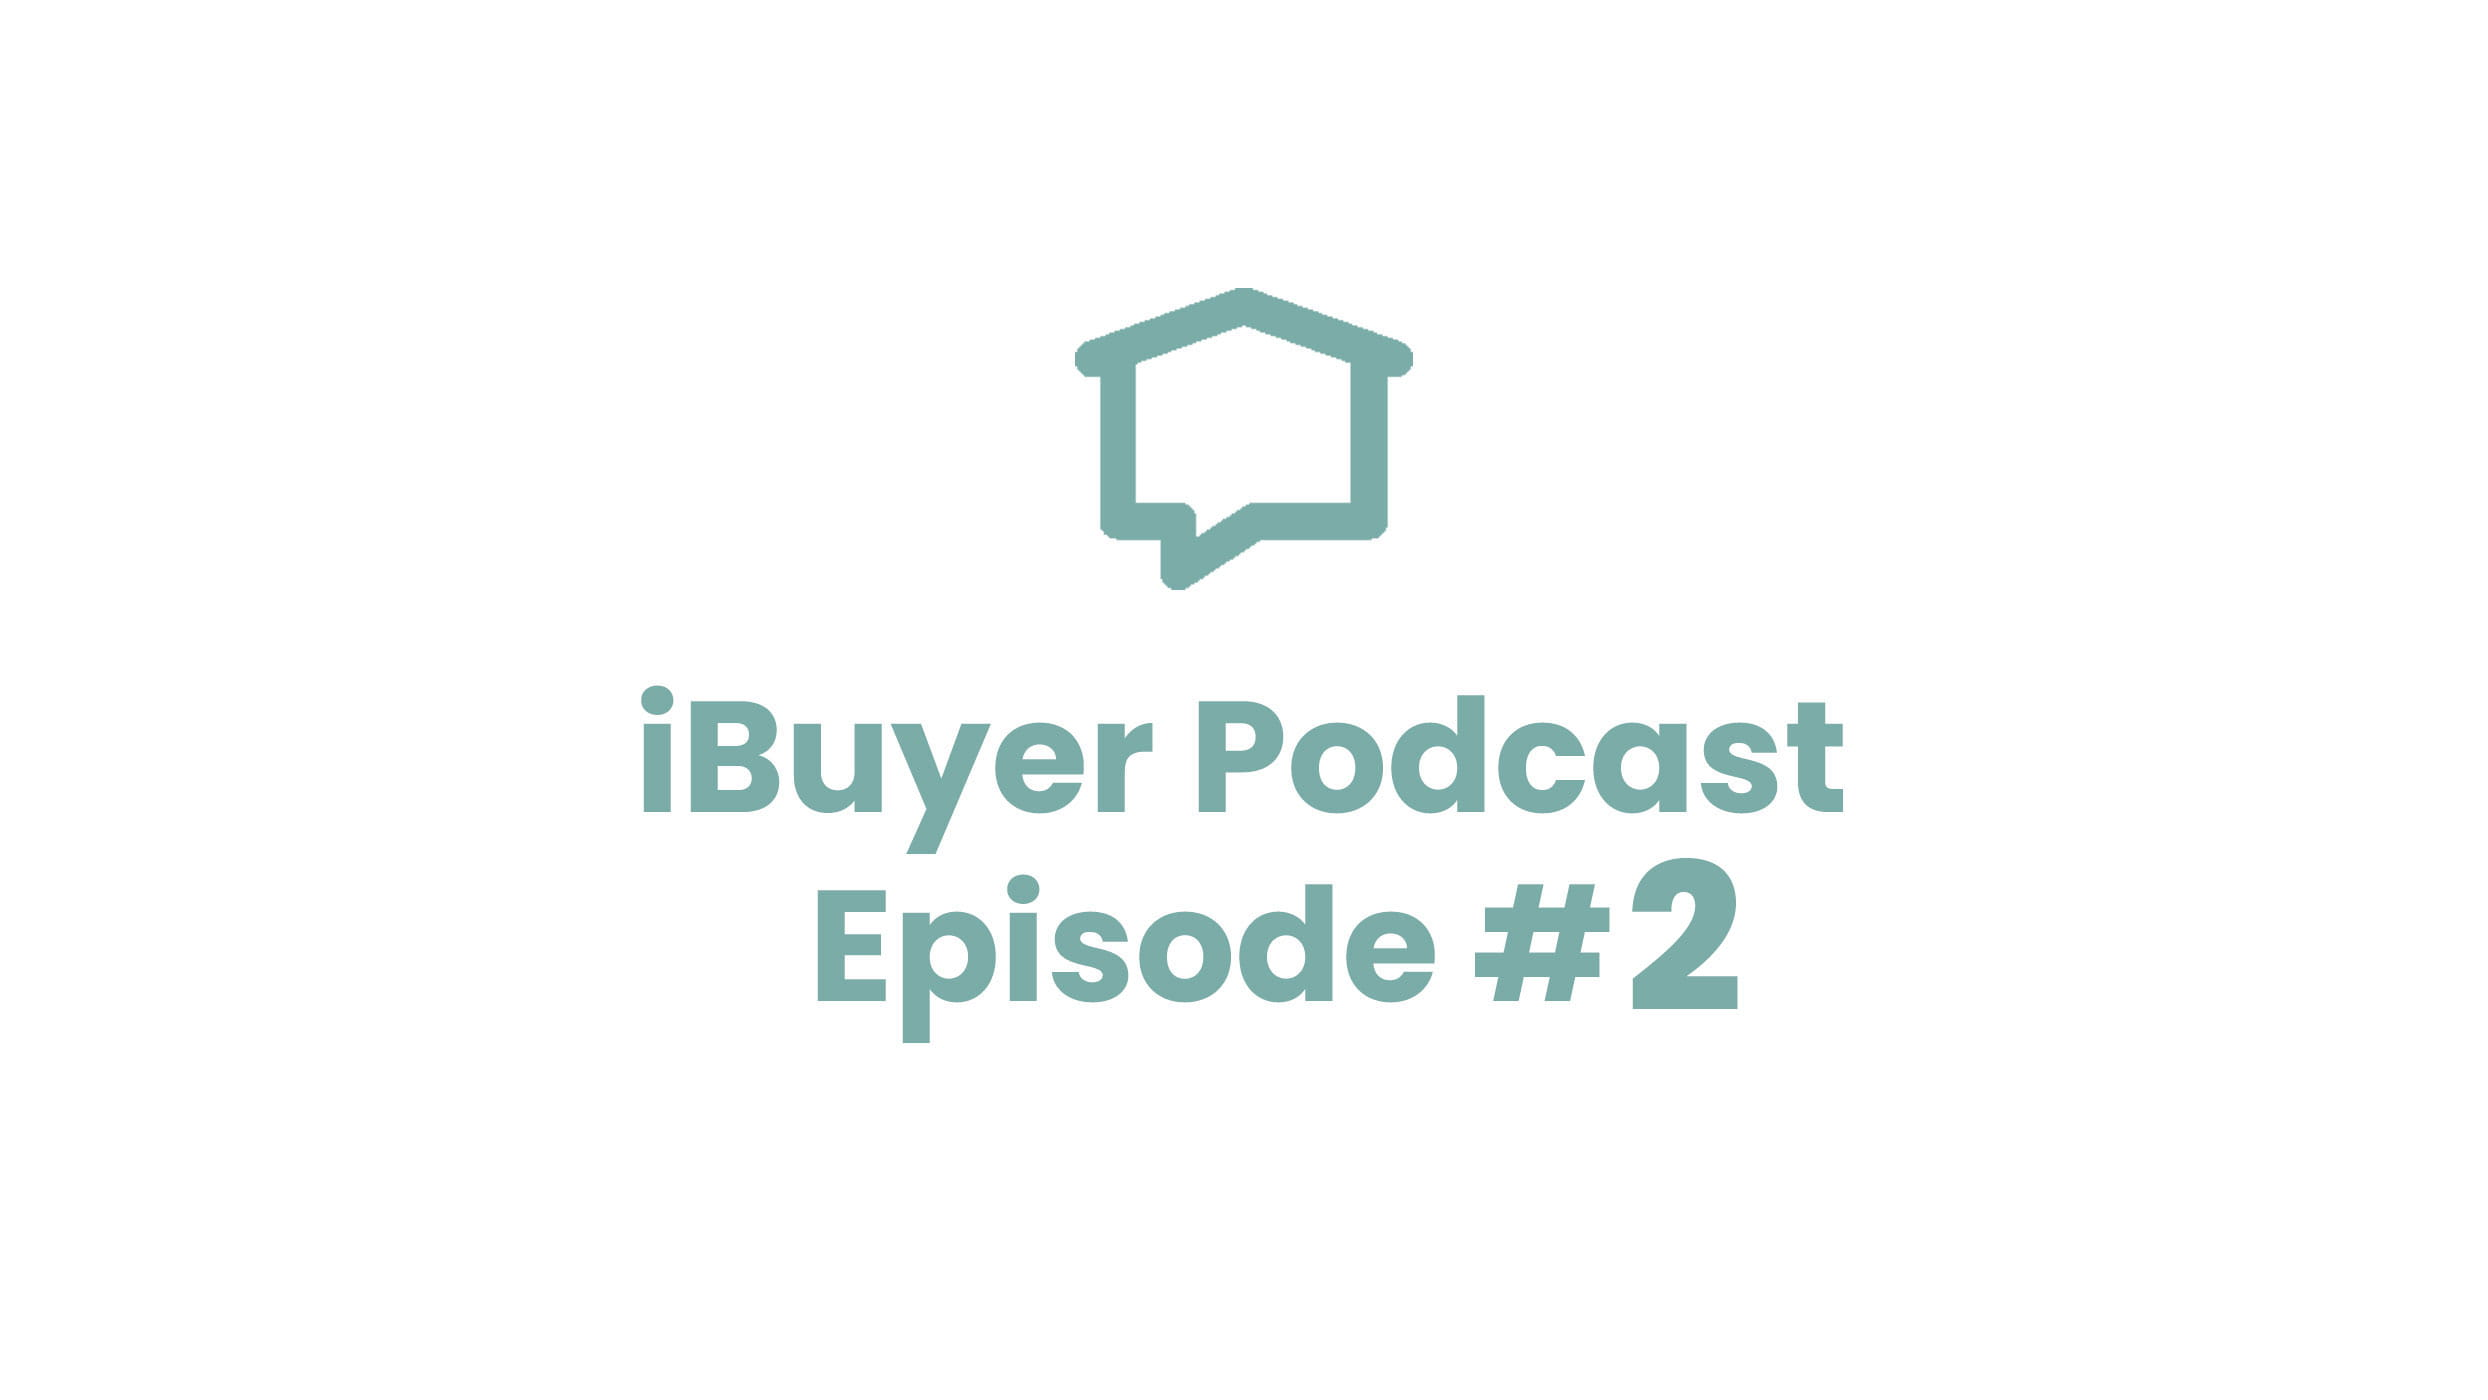 the second episode of the ibuyer podcast